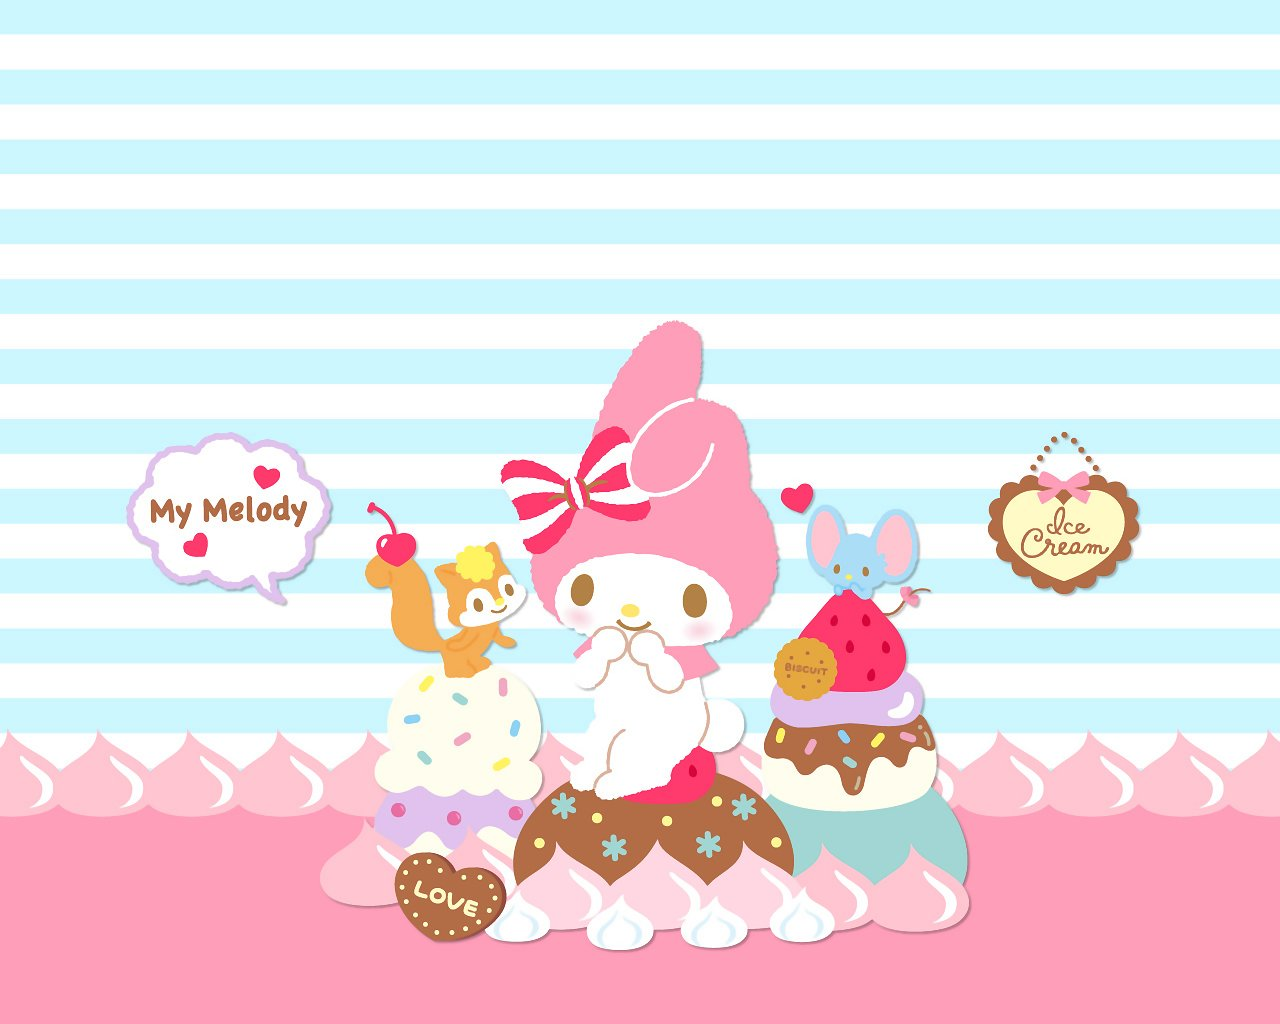 48+ My Melody Wallpaper on WallpaperSafari